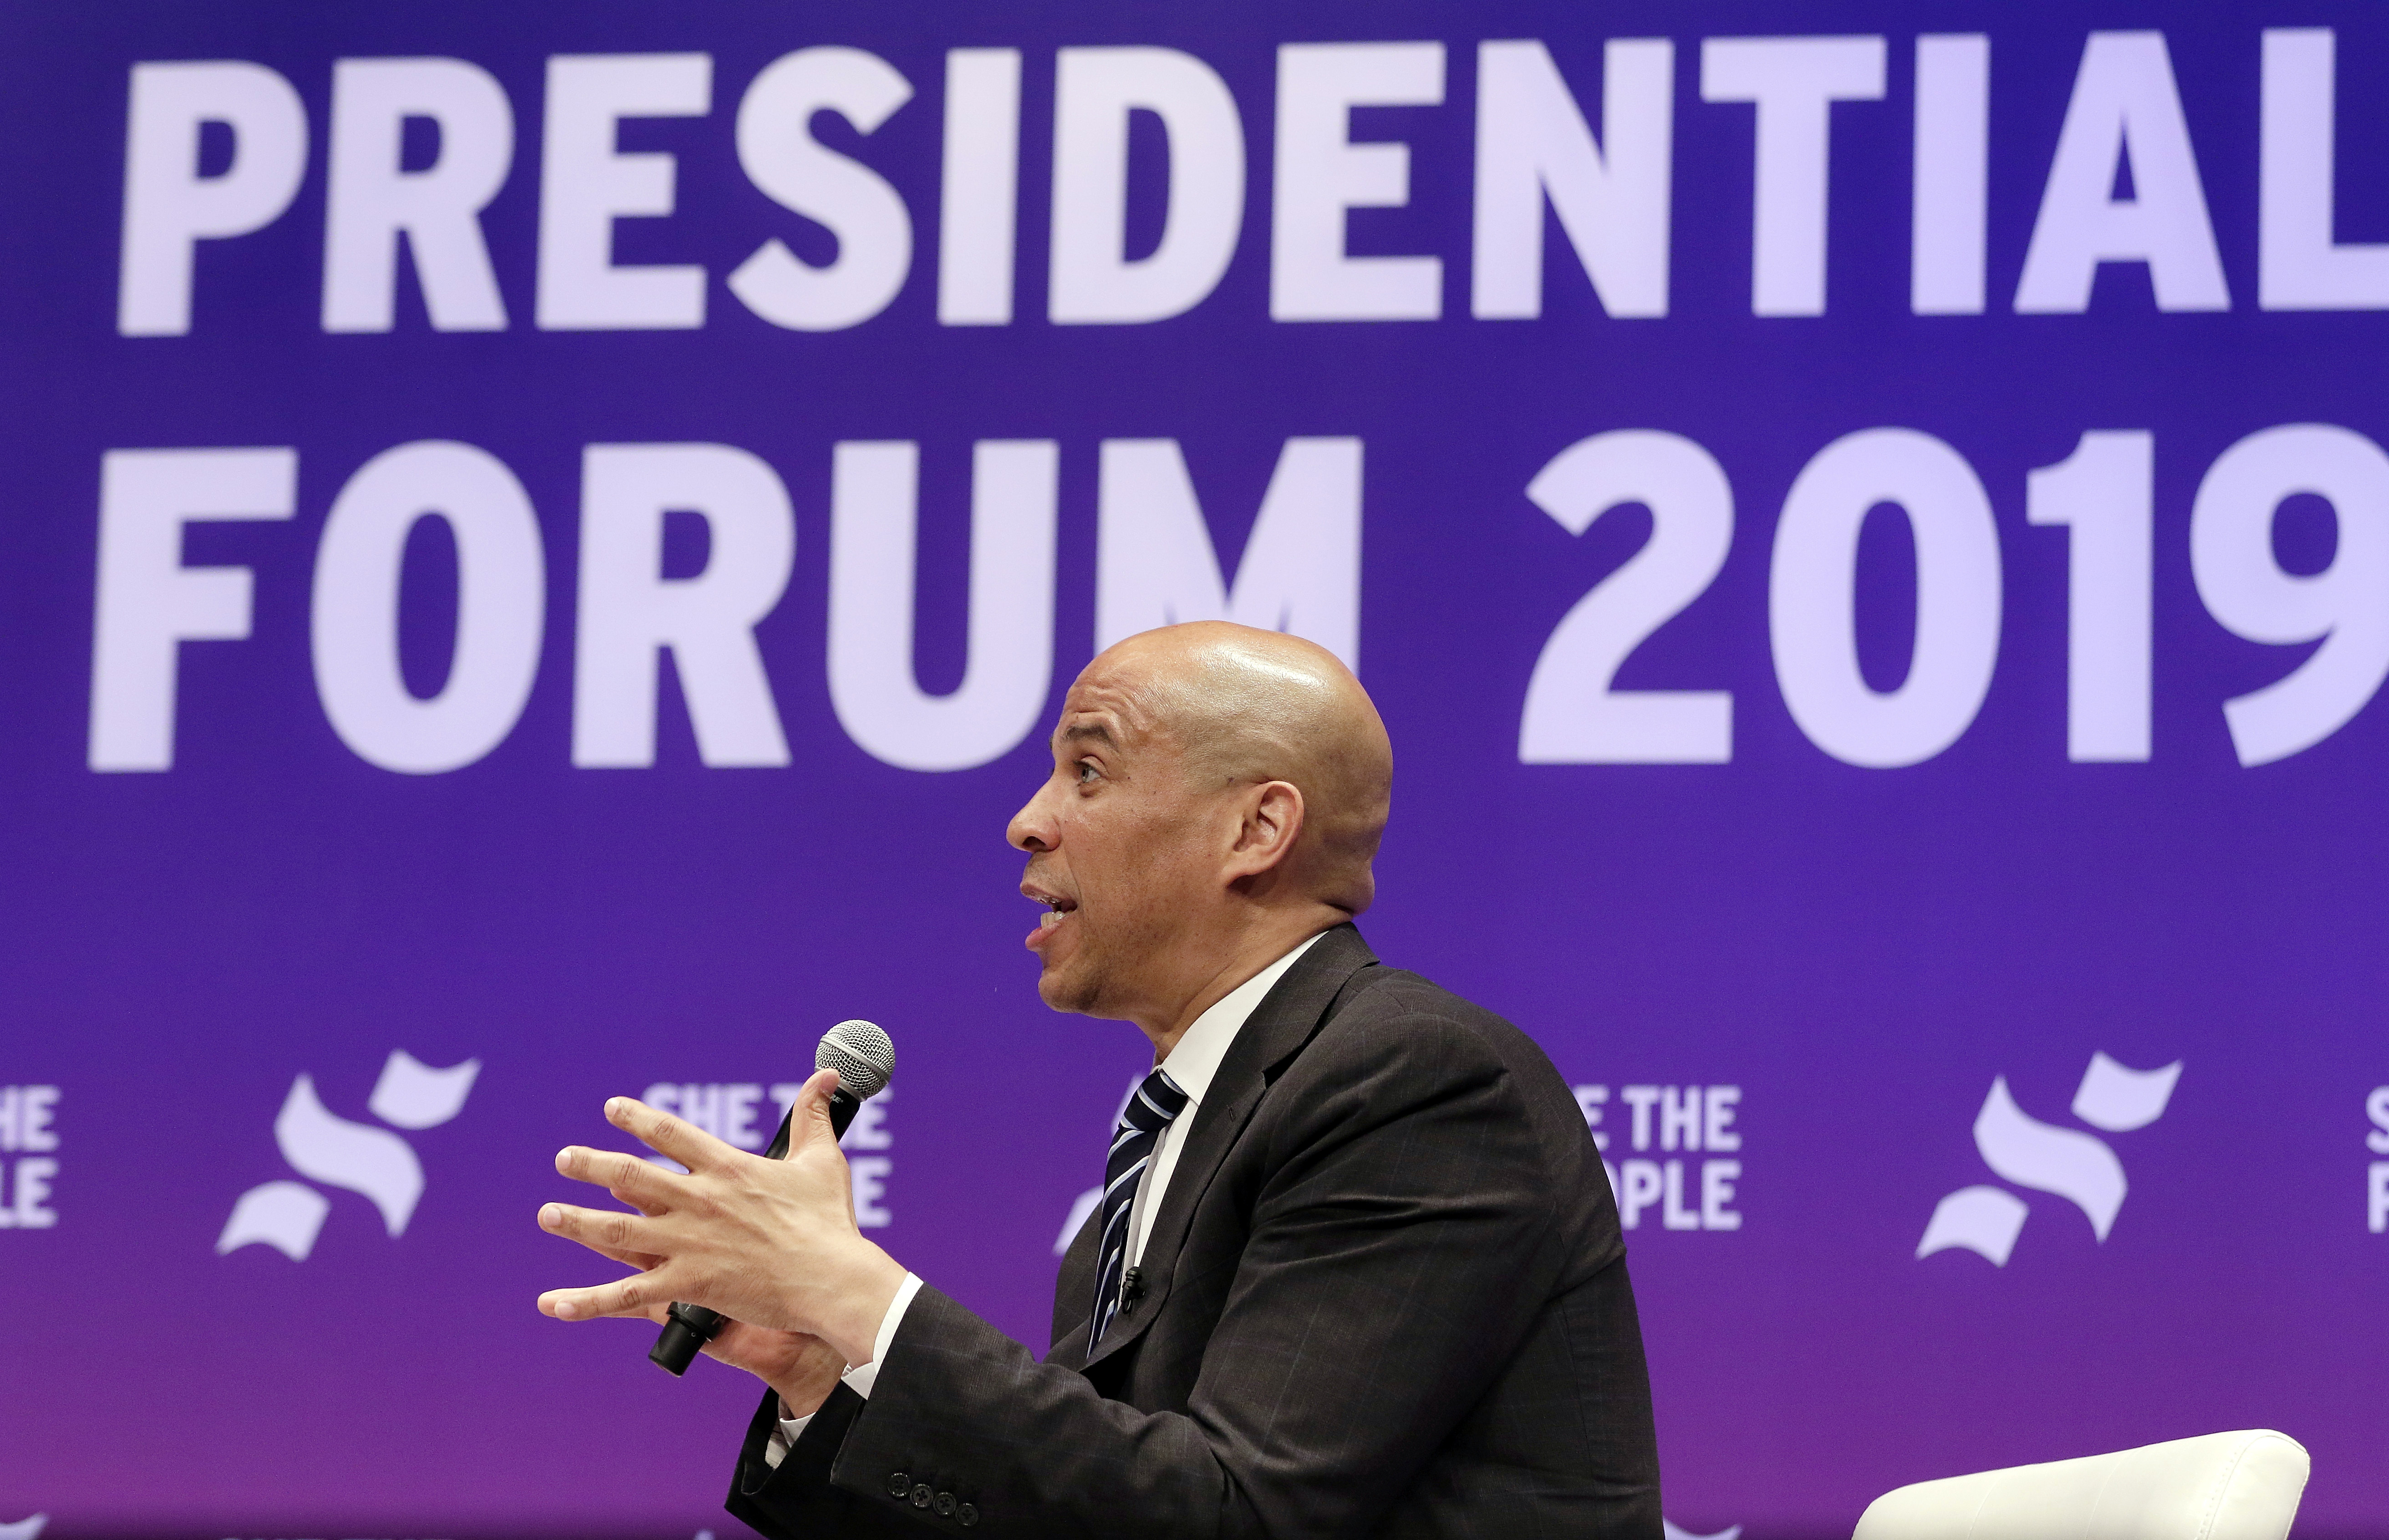 Some women of color frustrated by Biden's expected 2020 bid